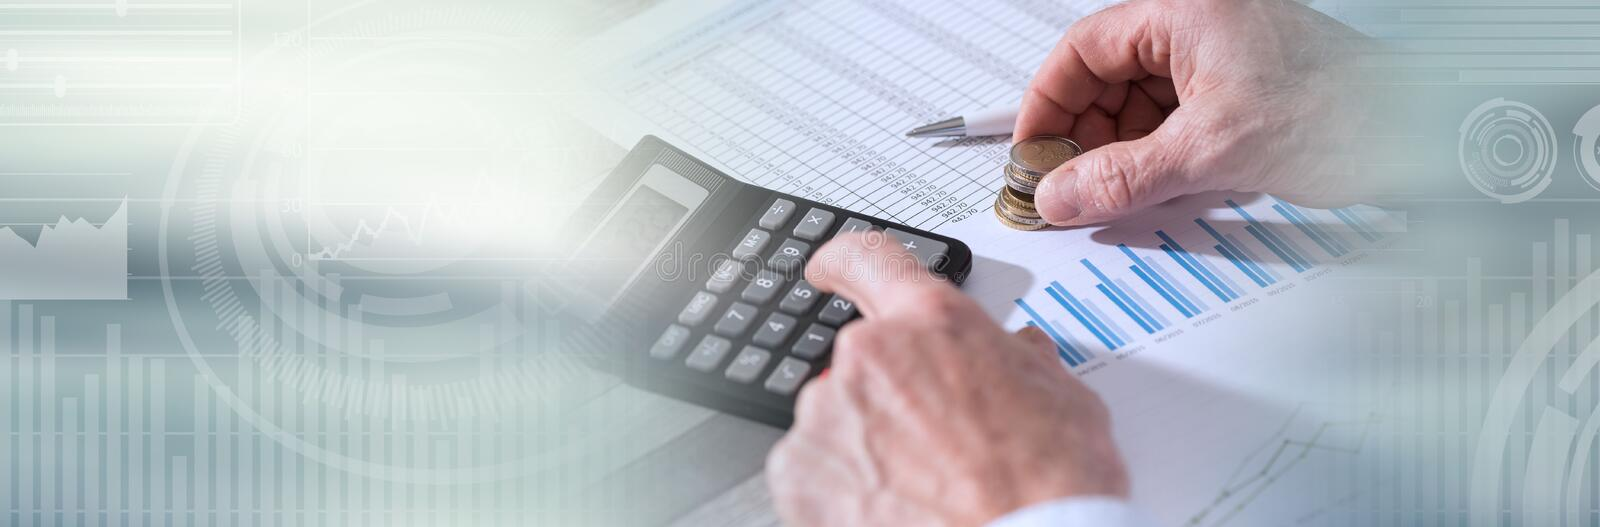 Hands of an accountant working on financial documents. panoramic banner. Hands of an accountant working on financial documents and using a calculator. panoramic royalty free stock photos